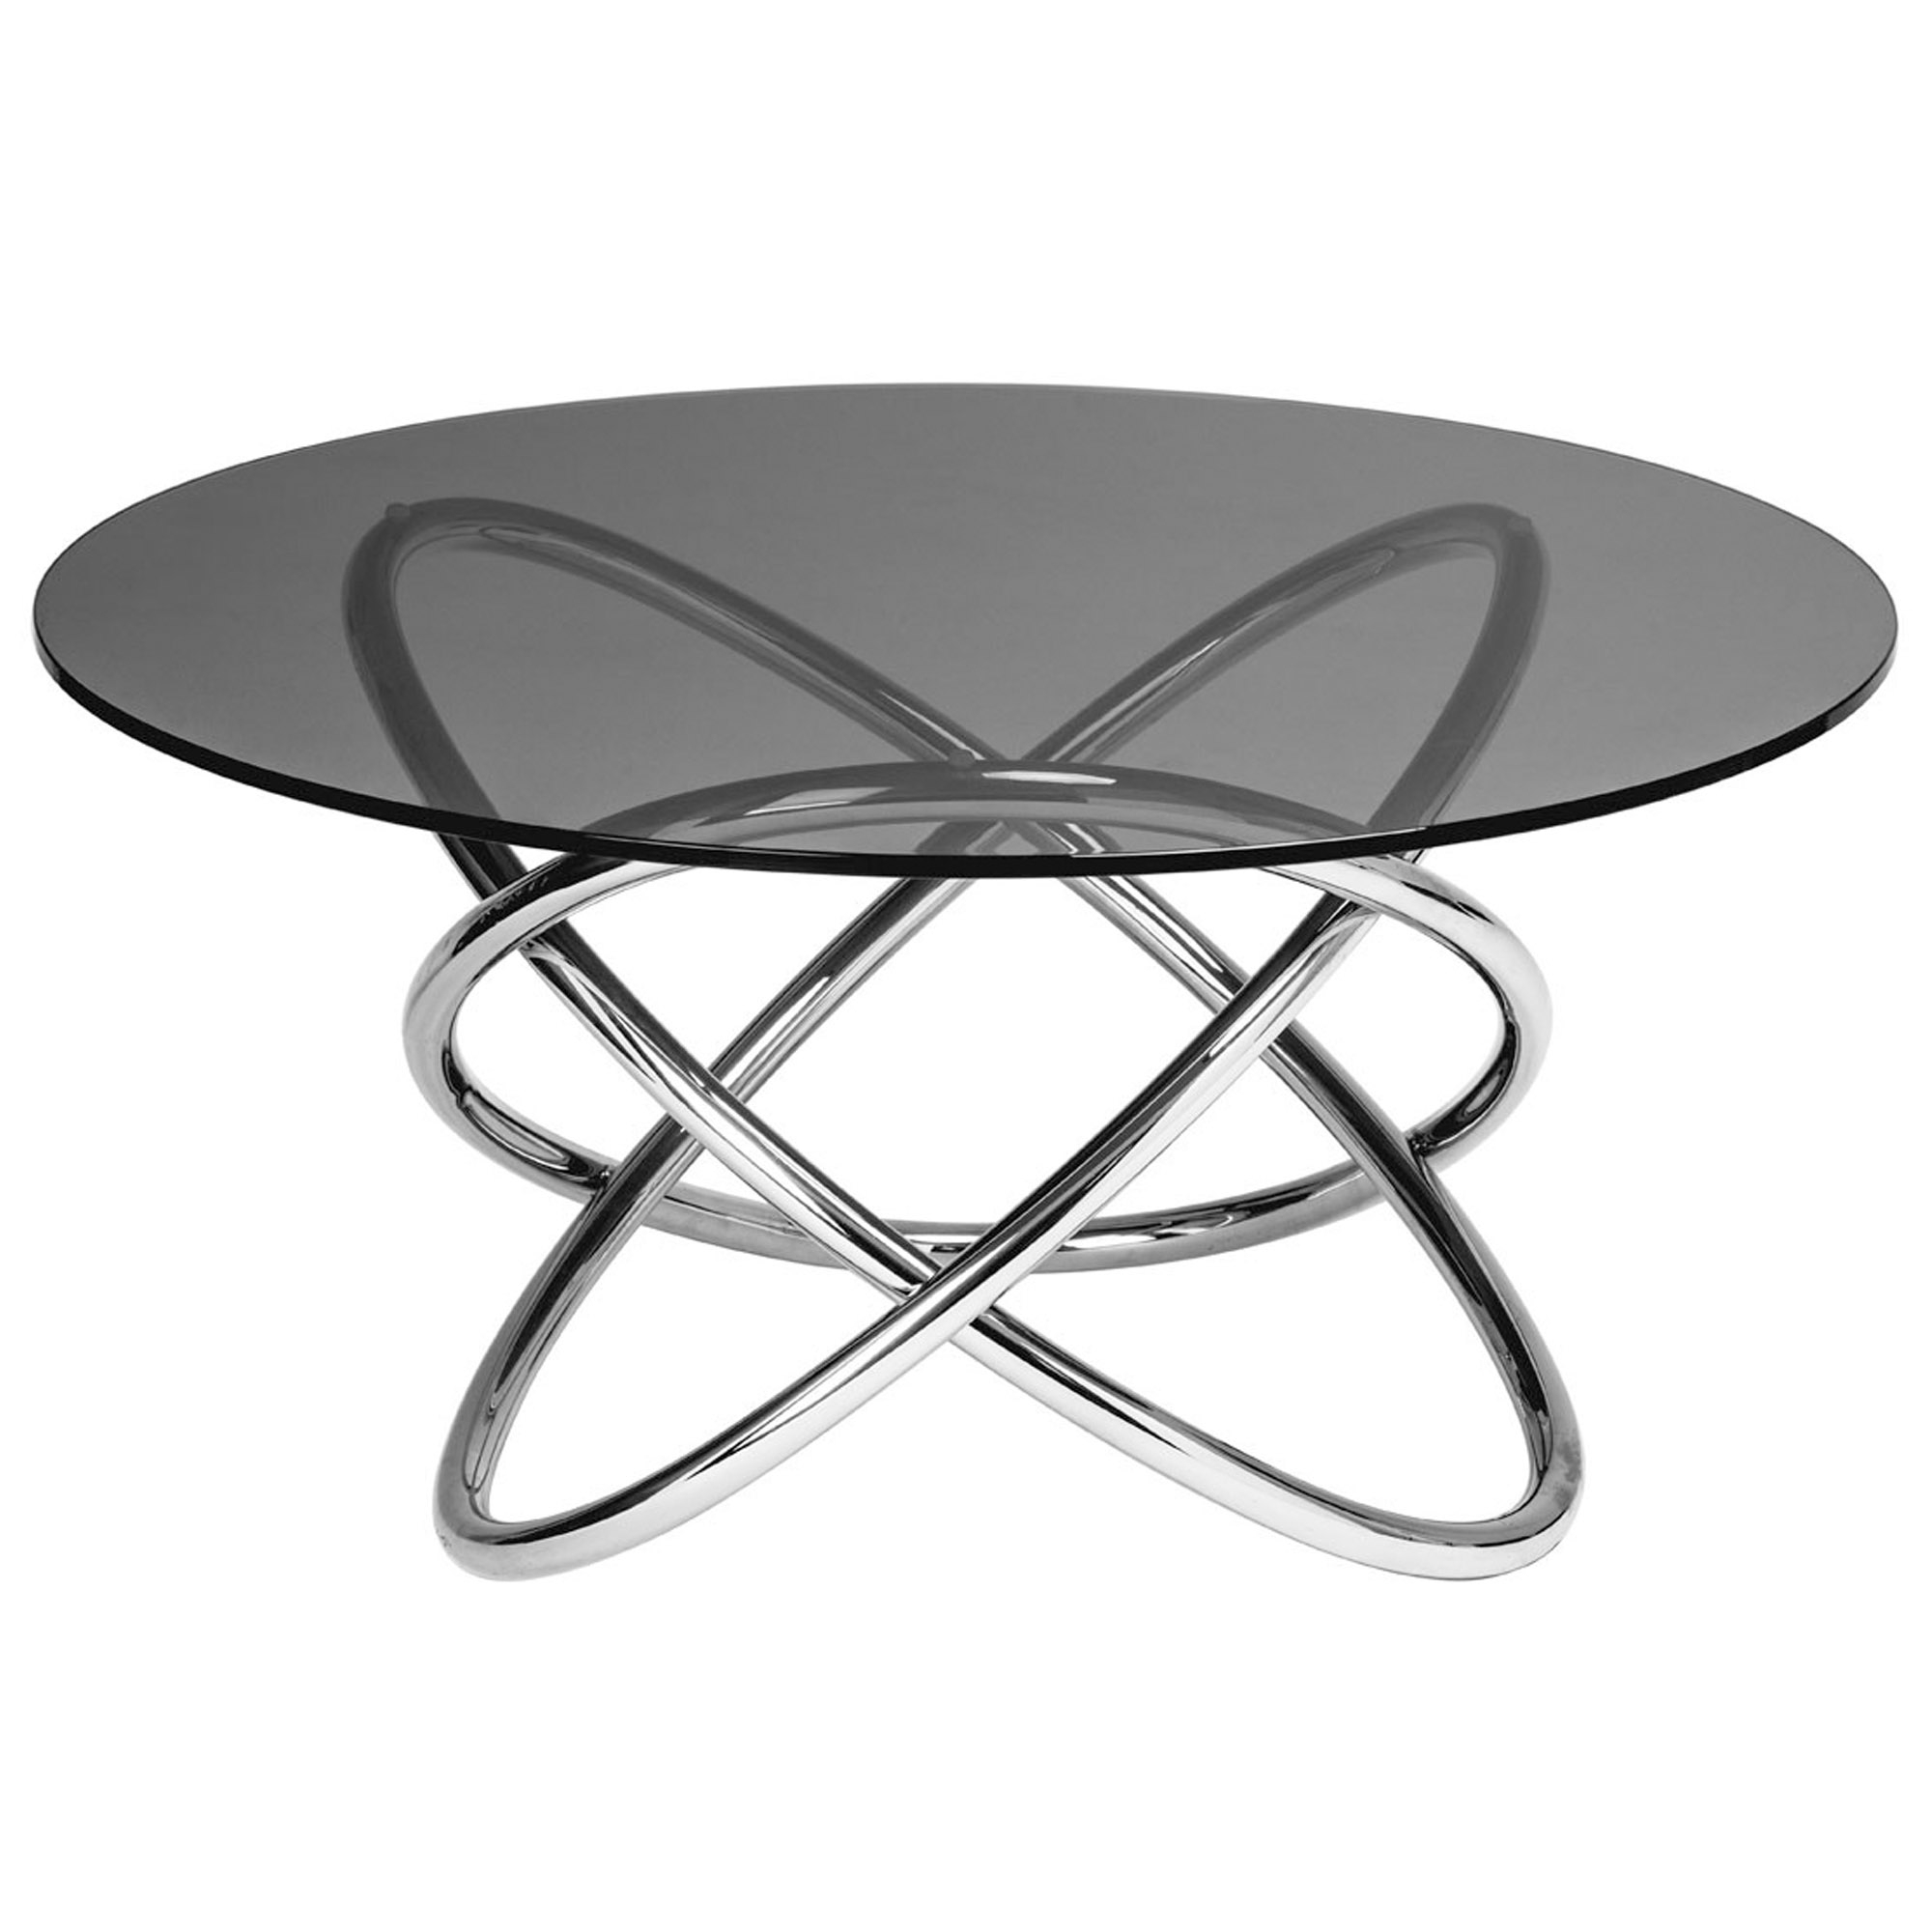 Smoked Glass Coffee Table Modern Contemporary Furniture